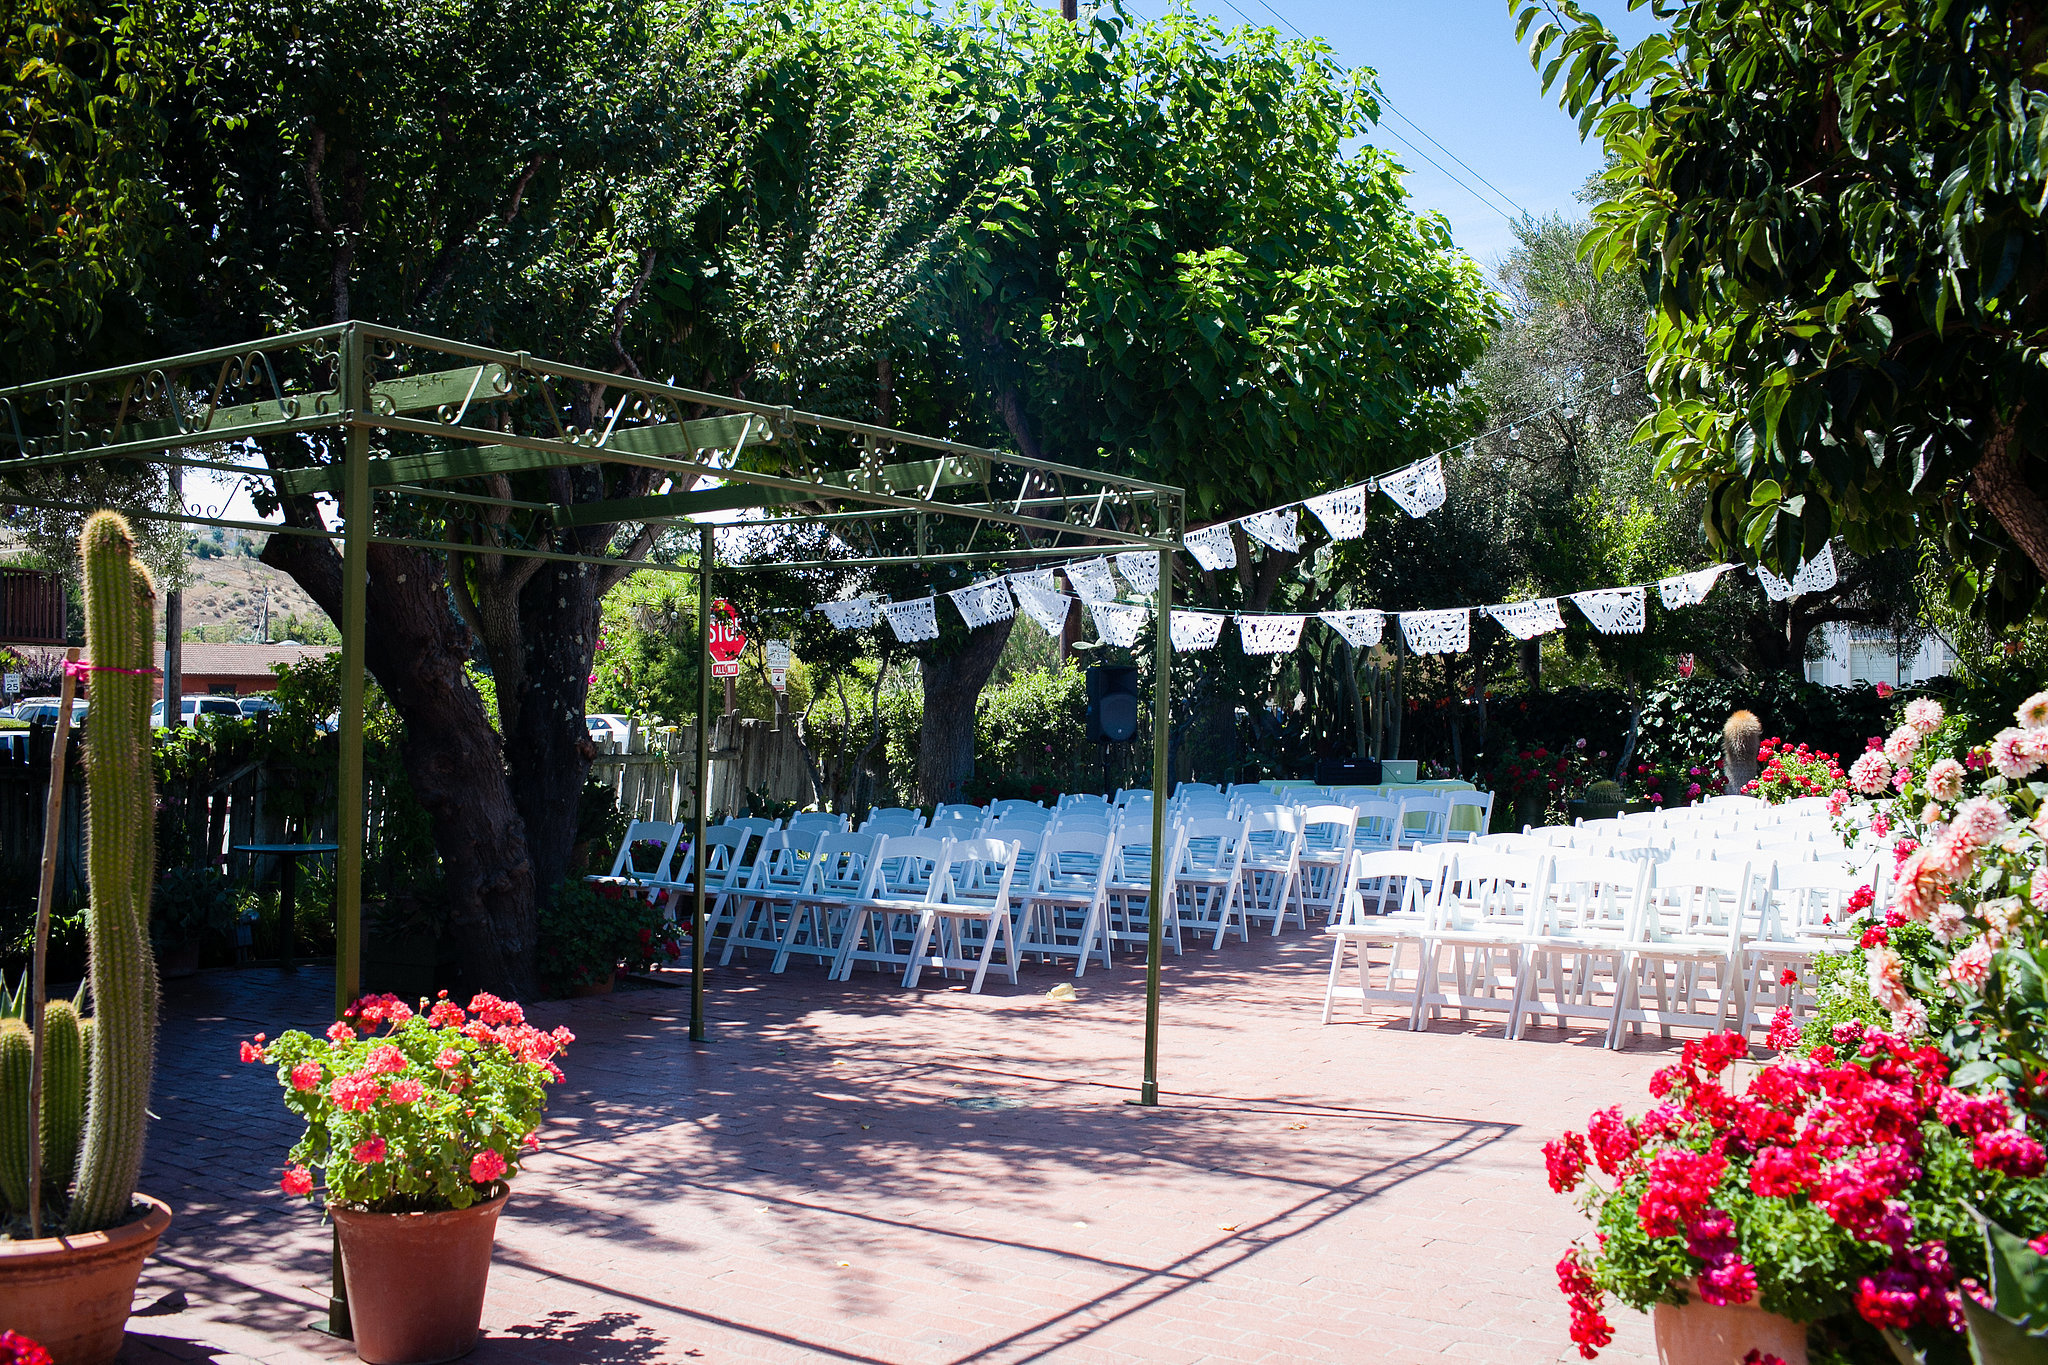 """Where did the wedding take place, and why did you choose it? """"We stumbled across San Juan Bautista the Summer before our wedding, when we were camping nearby with friends. One of them mentioned the mission there, so we stopped by and treated ourselves to brunch at Jardines de San Juan, which happened to have a beautiful back garden in addition to the great food (and margaritas!). It popped up on a list of gay-friendly venues when we started our search not long after that, so we knew it was meant to be. We even got to take our postceremony shots on the mission grounds!"""" Photo by G Aranow Photography"""